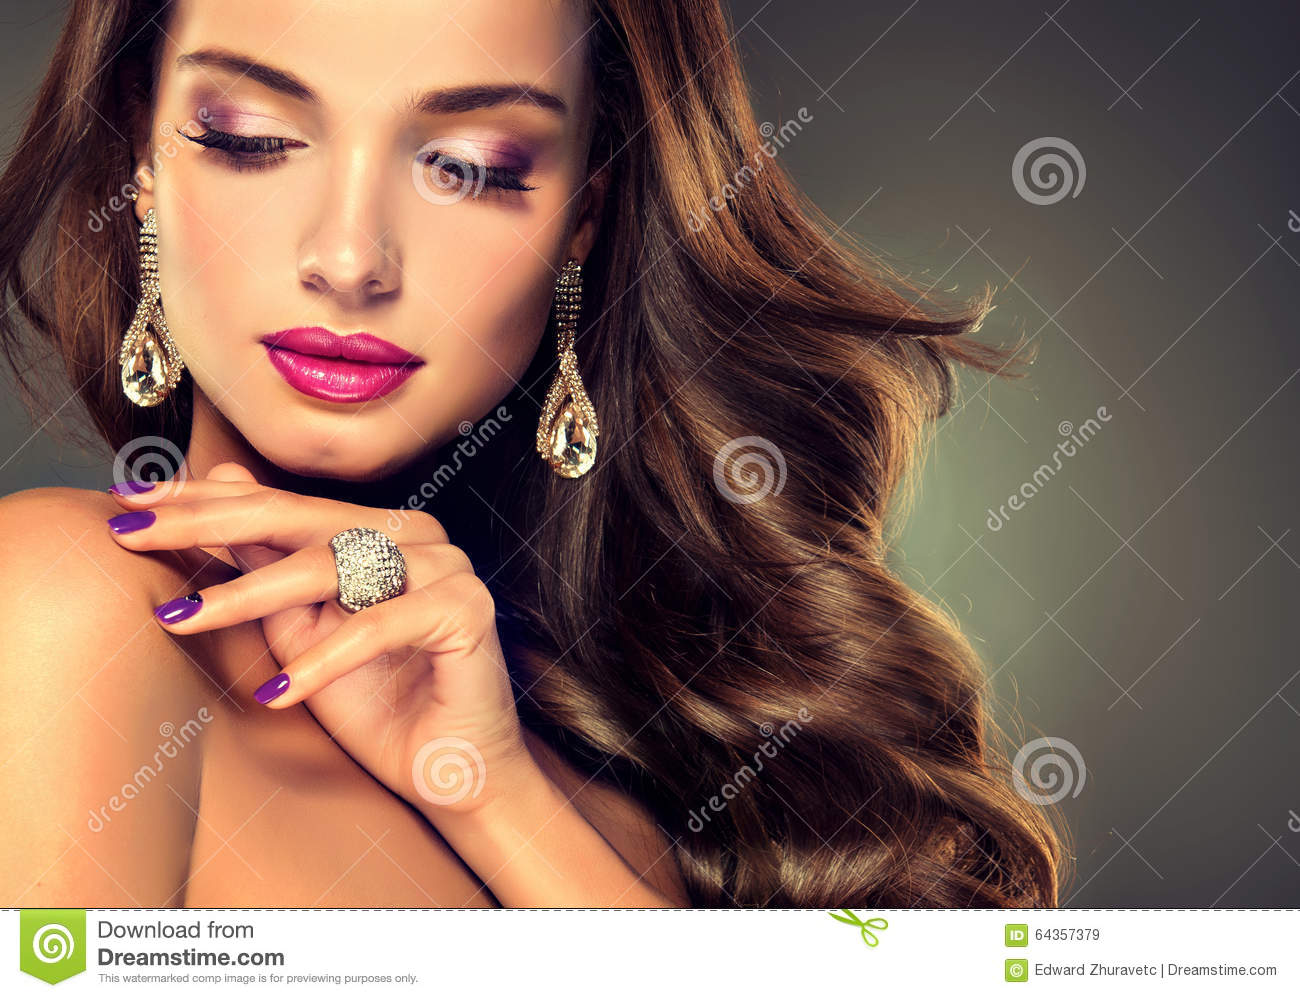 Luxury Fashion Style Brunette With Long Curled Hair Stock Photo Image 64357379